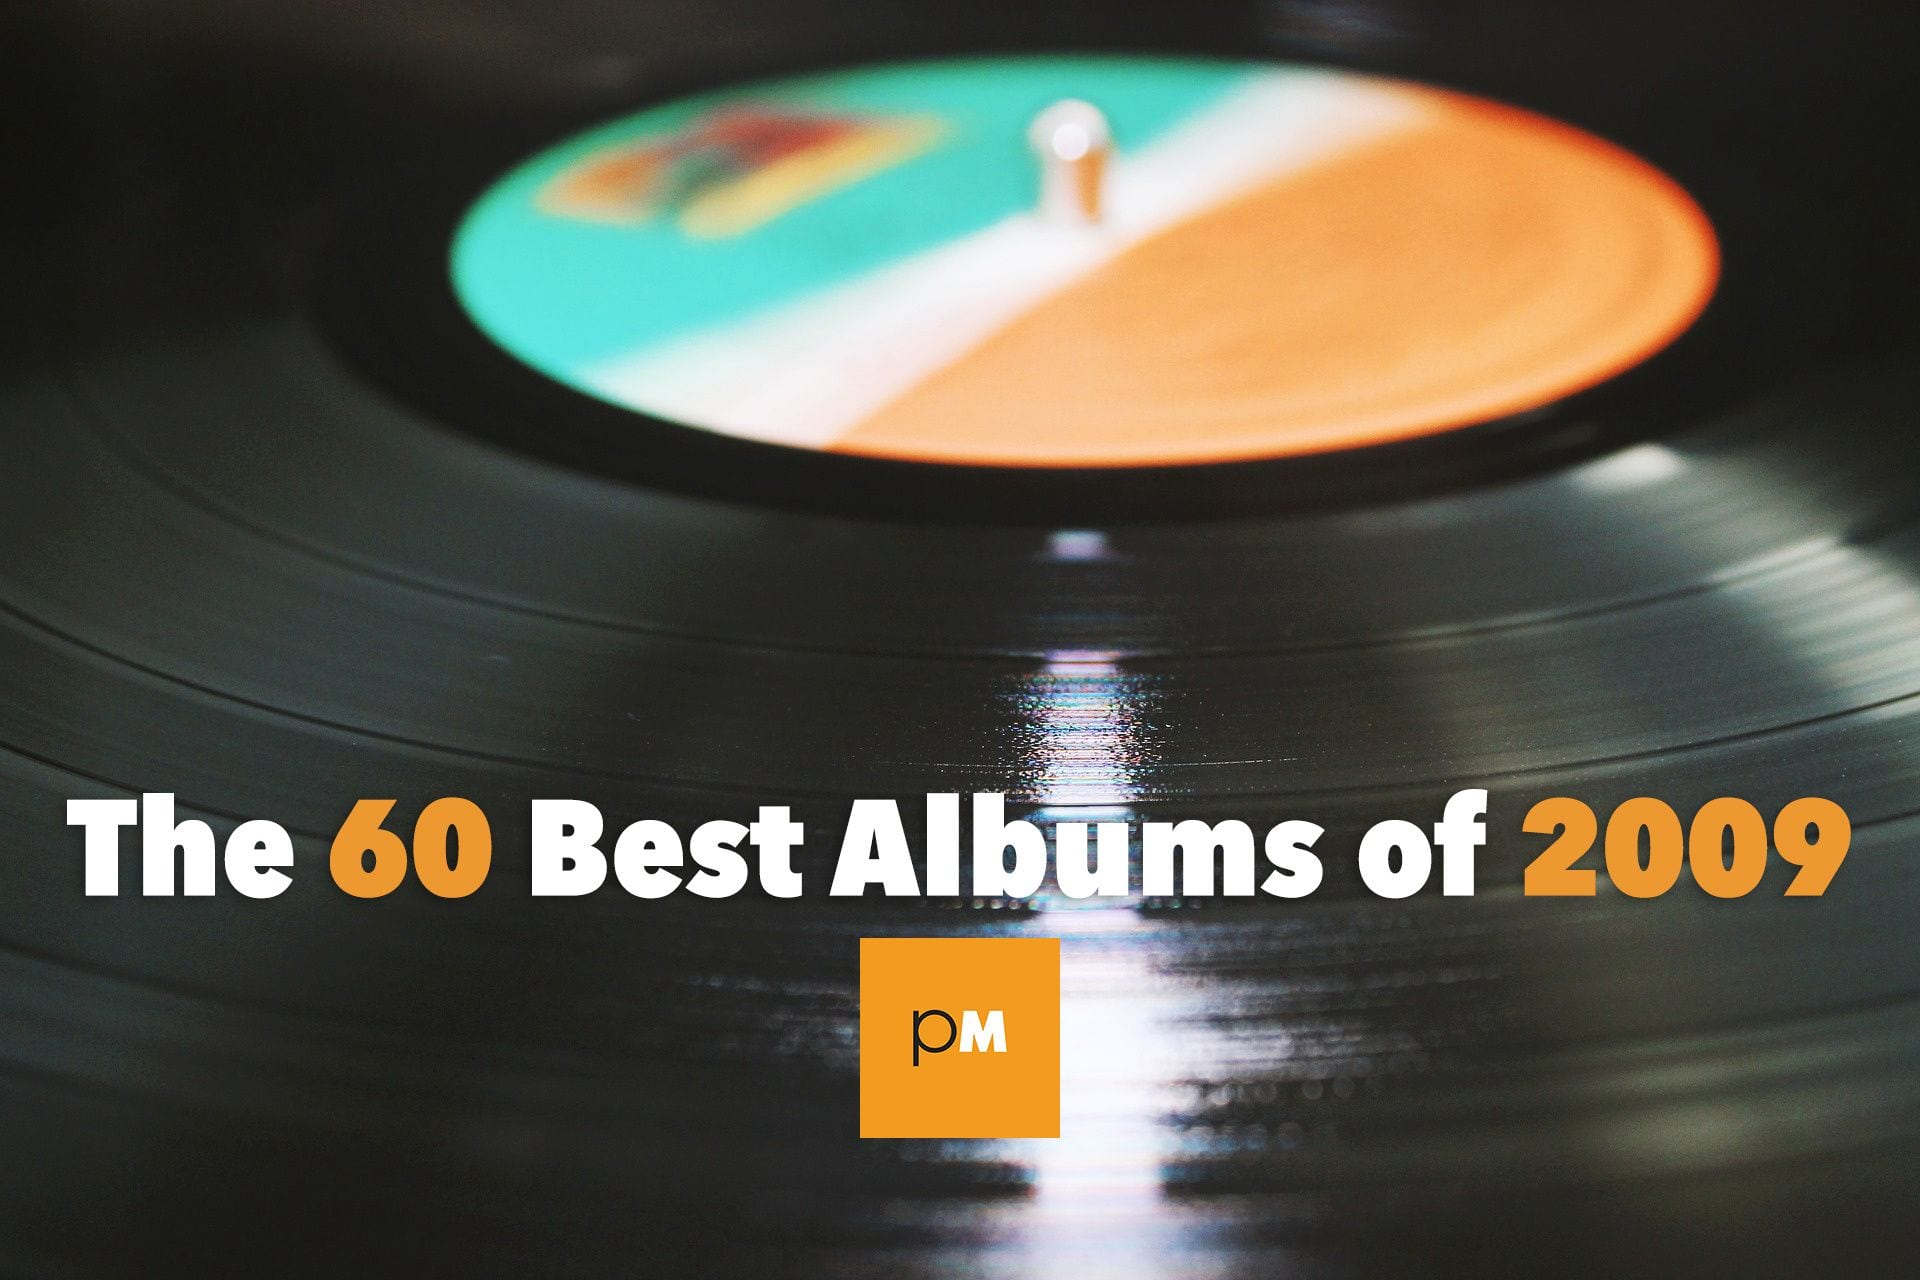 The 60 Best Albums of 2009